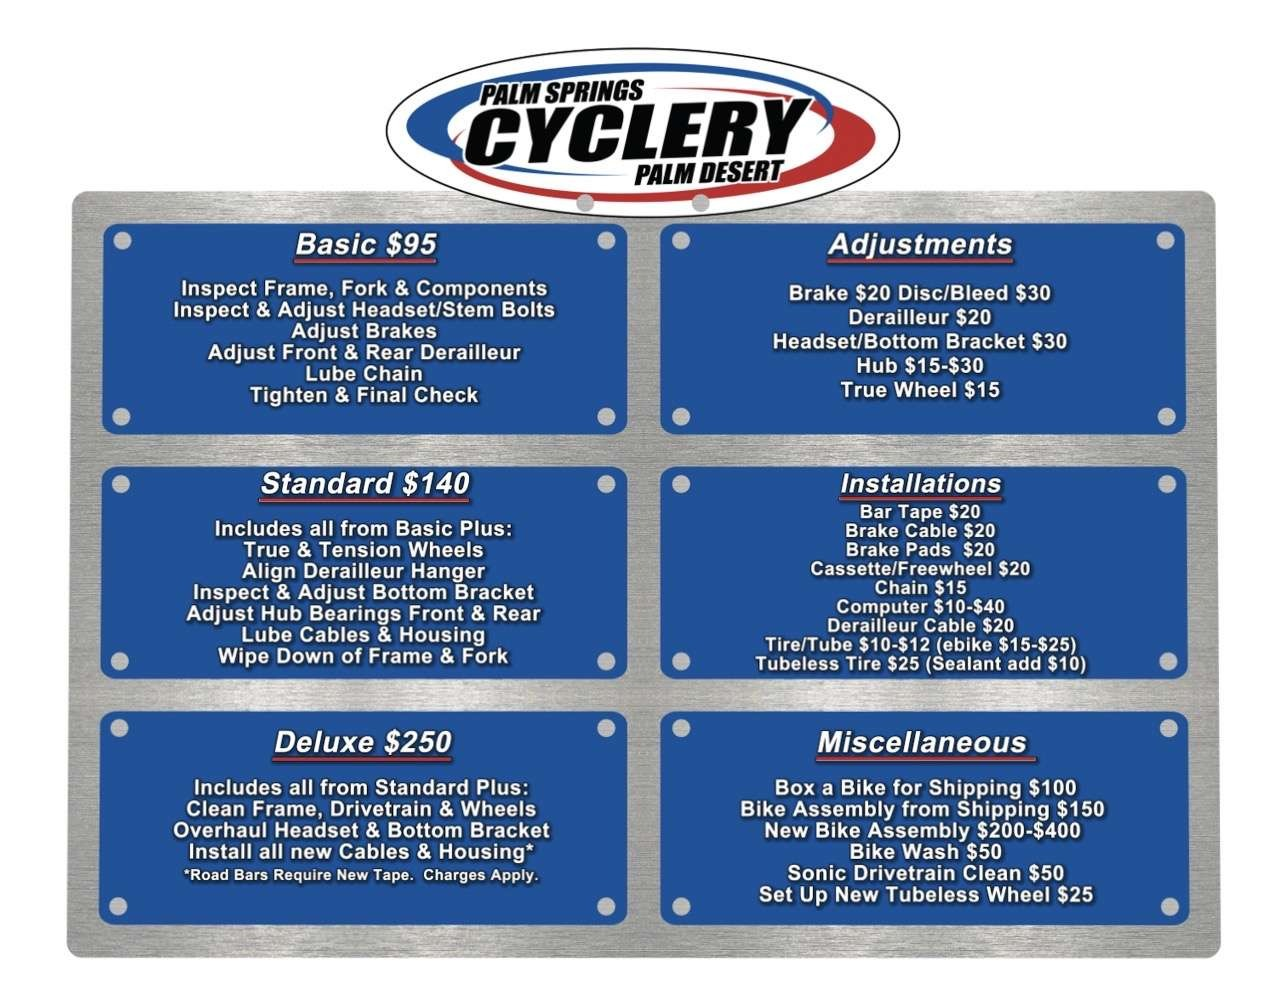 Bike Repair and Service Menu